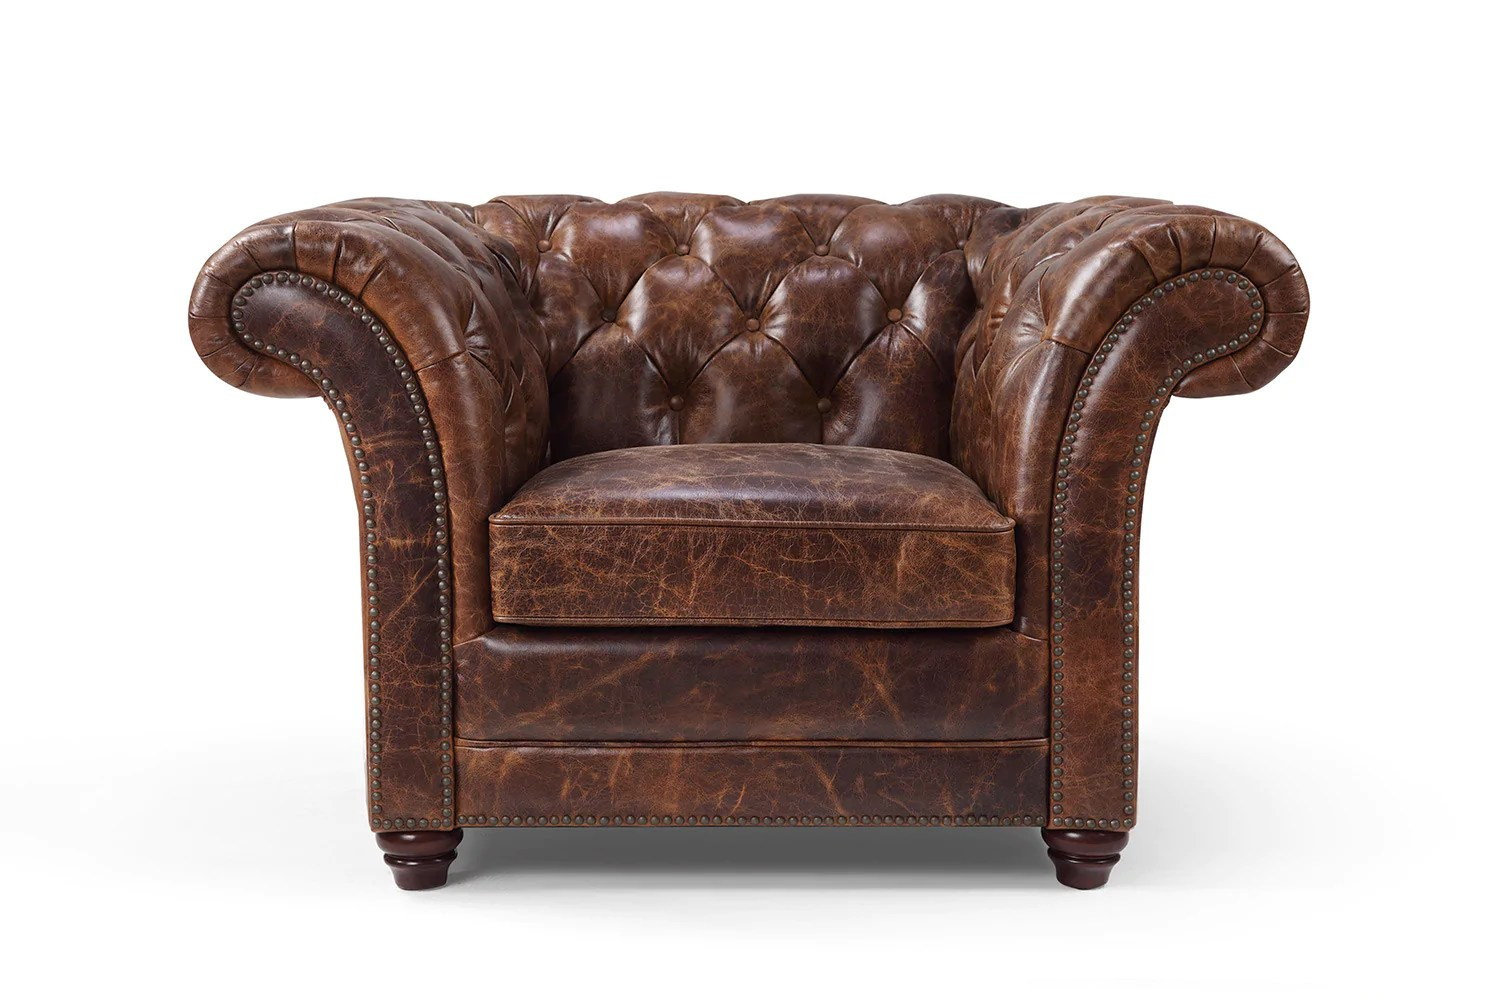 Leather Chesterfield Chair The Westminster Chesterfield Leather Chair Rose And Moore